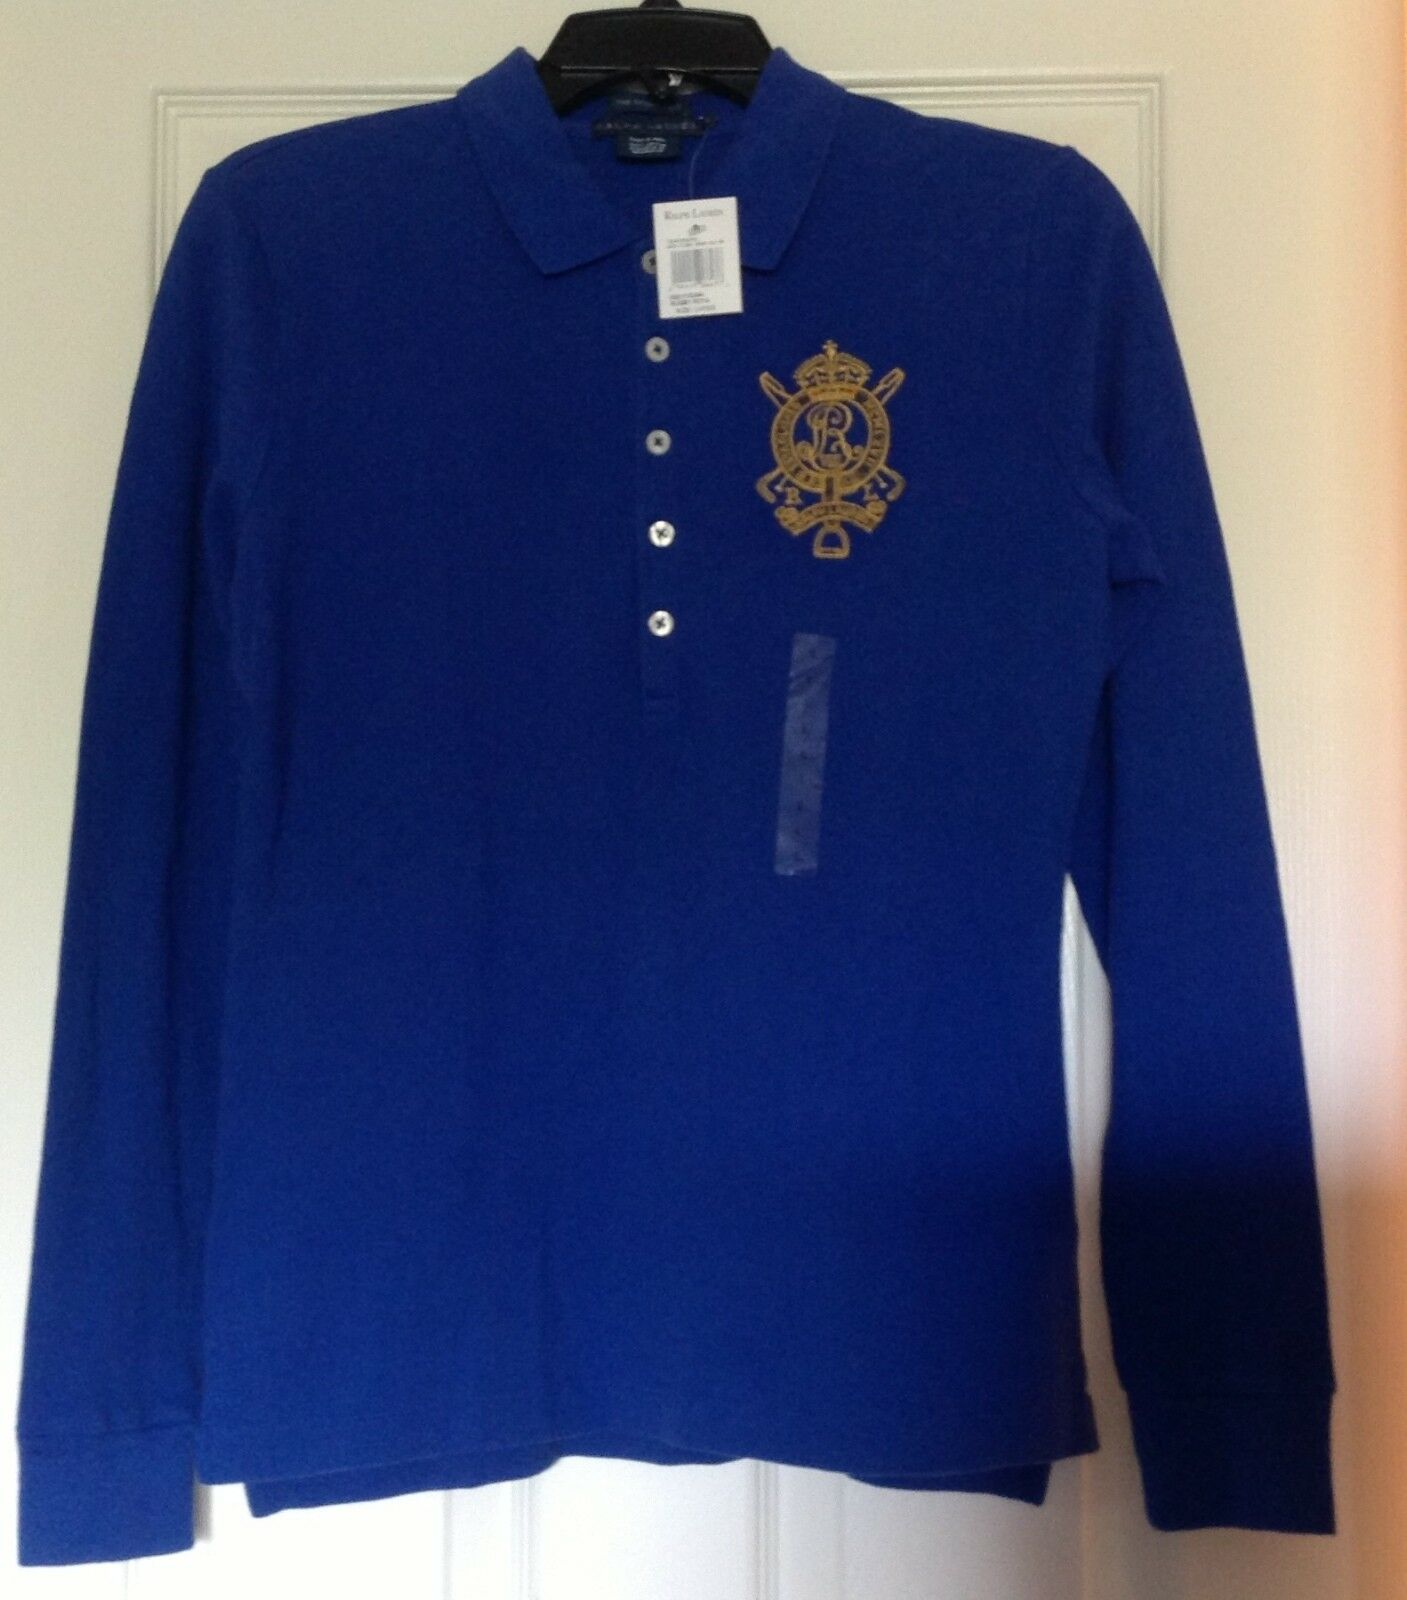 NWT, Ralph Lauren top, royal bluee, embroidered logo RL crest, skinny polo, L